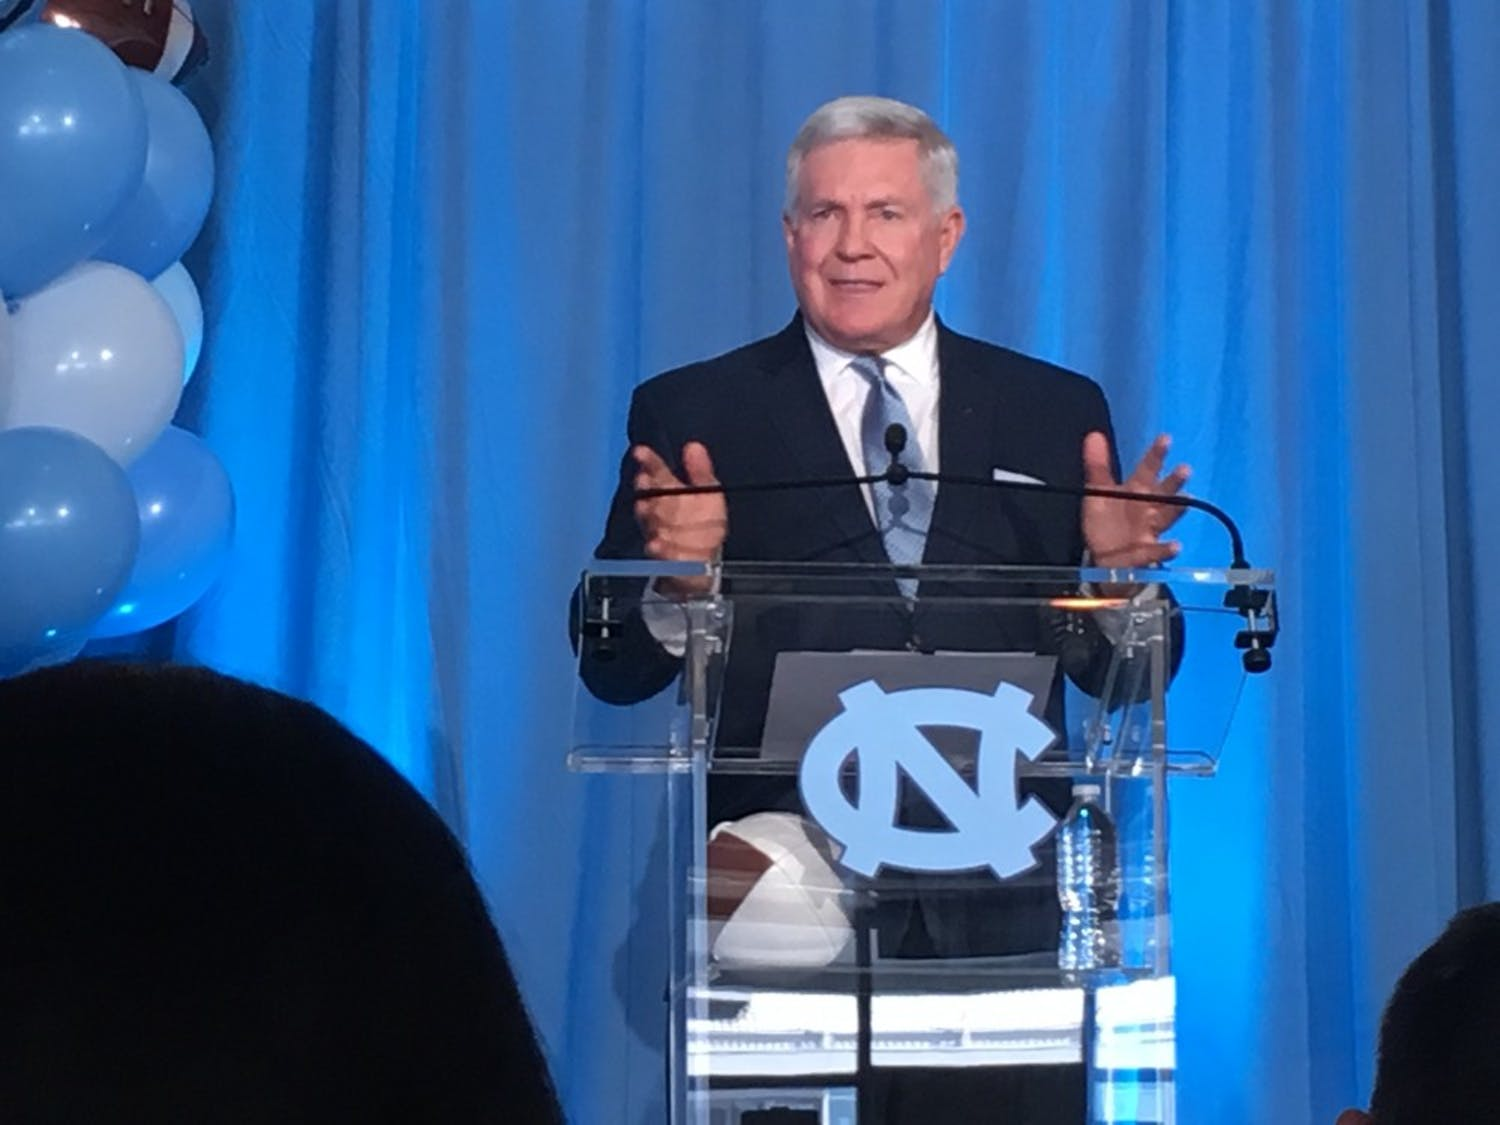 North Carolina football head coach Mack Brown speaks during his introductory press conference on Nov. 27, 2018.